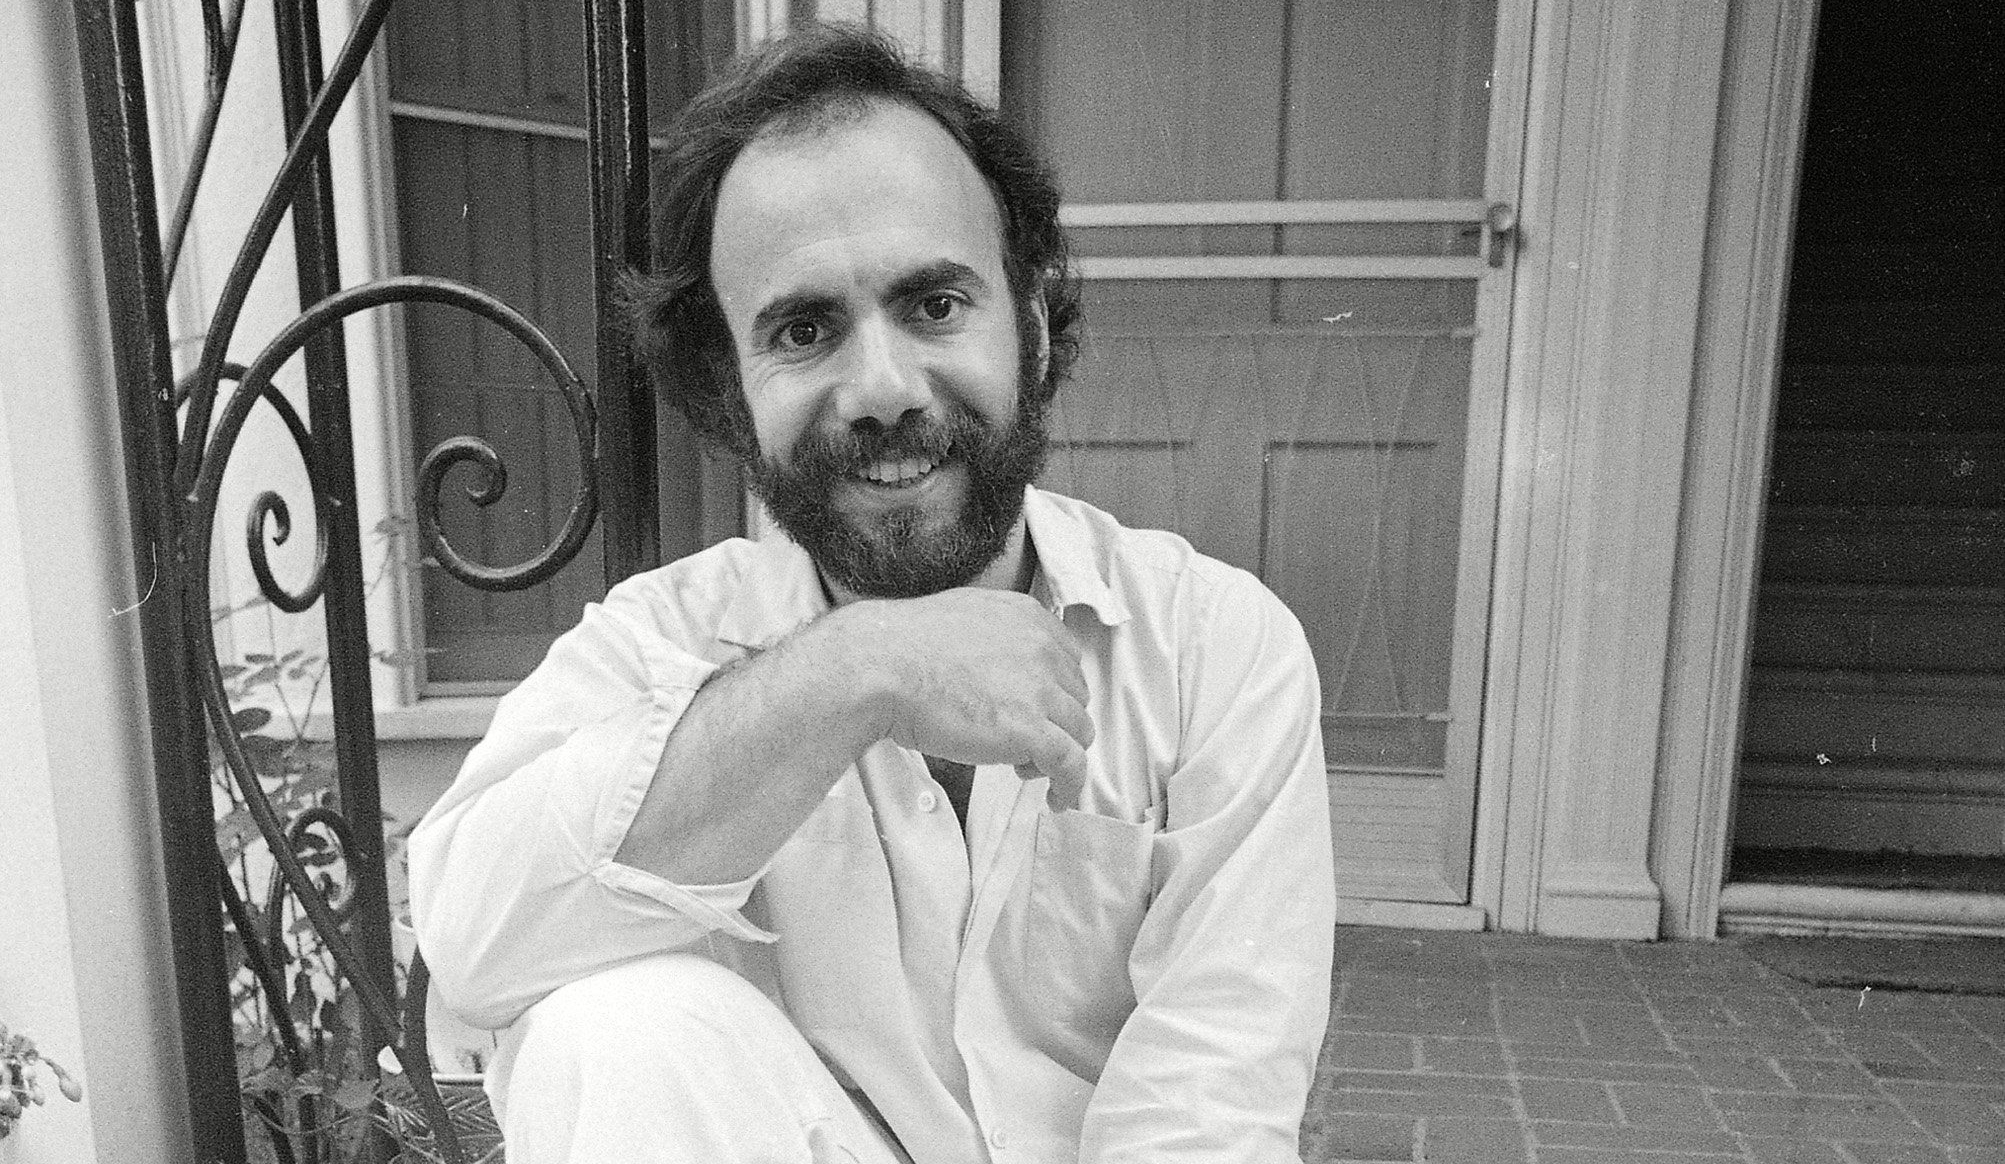 'City of New Orleans' Writer Steve Goodman to Be Celebrated on Deluxe Album Reissues